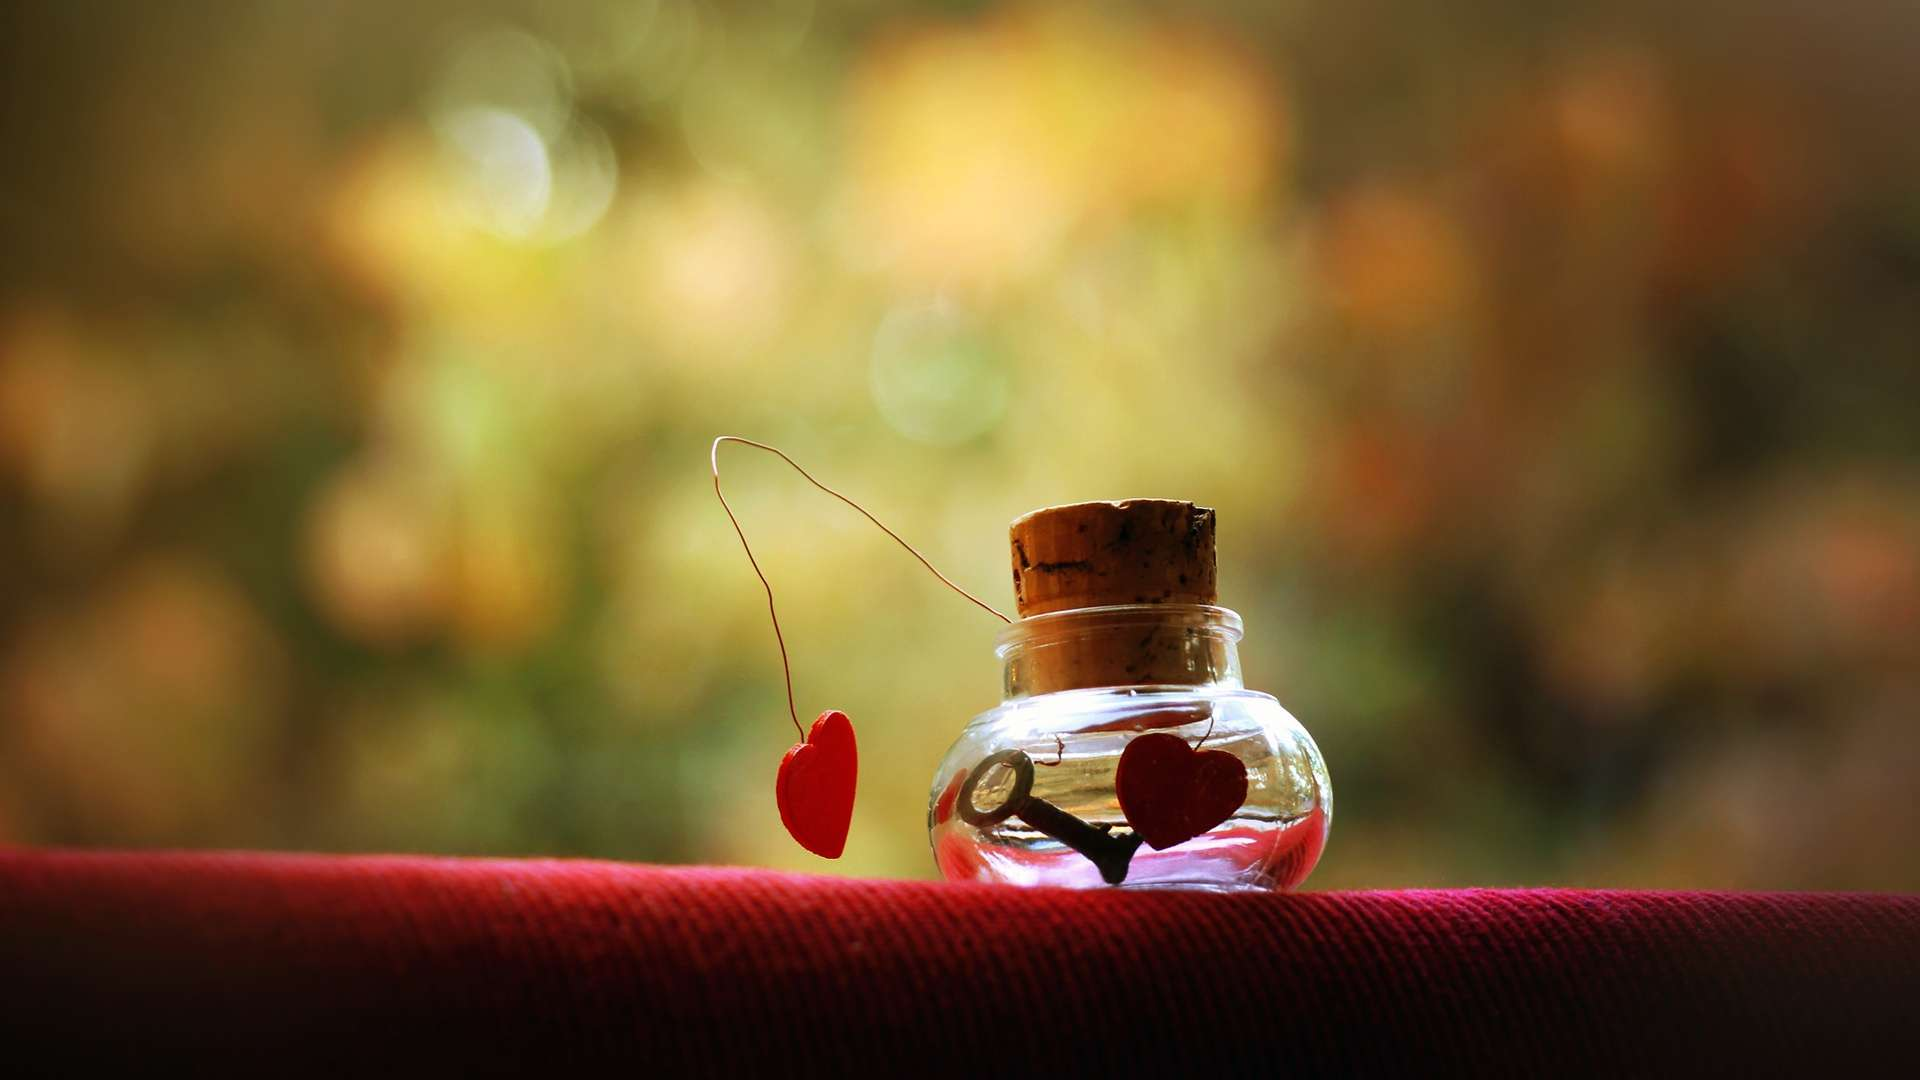 Download love hd wallpapers for pc gallery - Image of love wallpaper hd ...